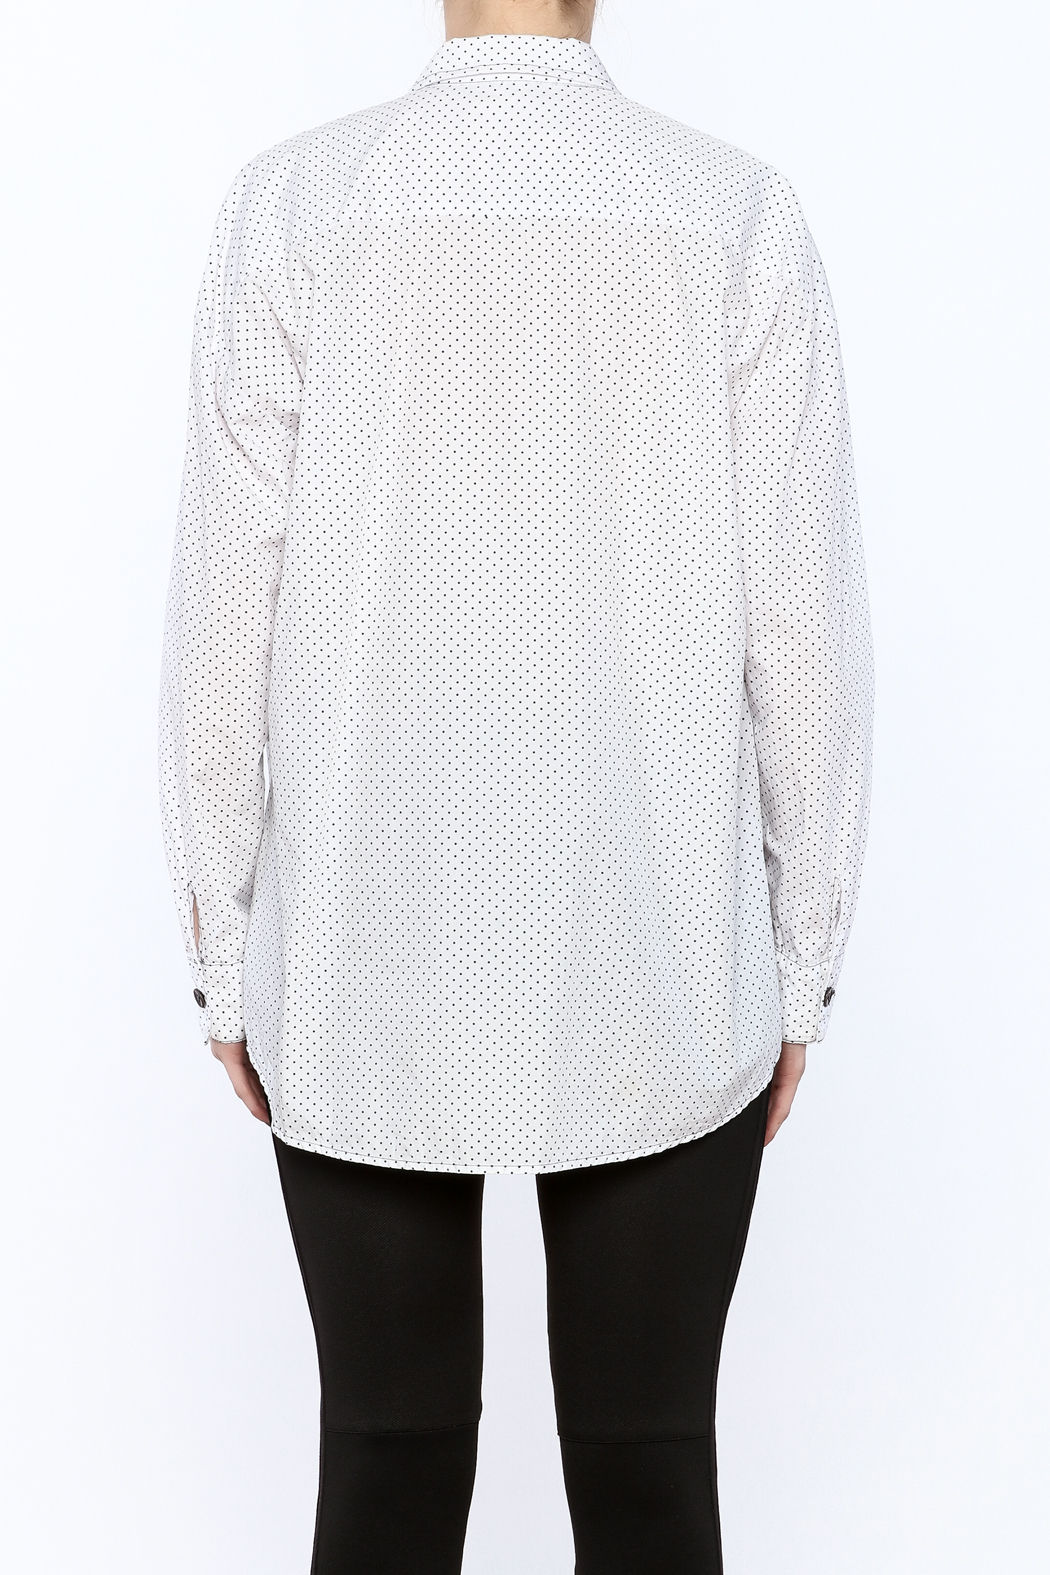 Neesh by D.A.R. Loose Fit Polkadot Shirt - Back Cropped Image